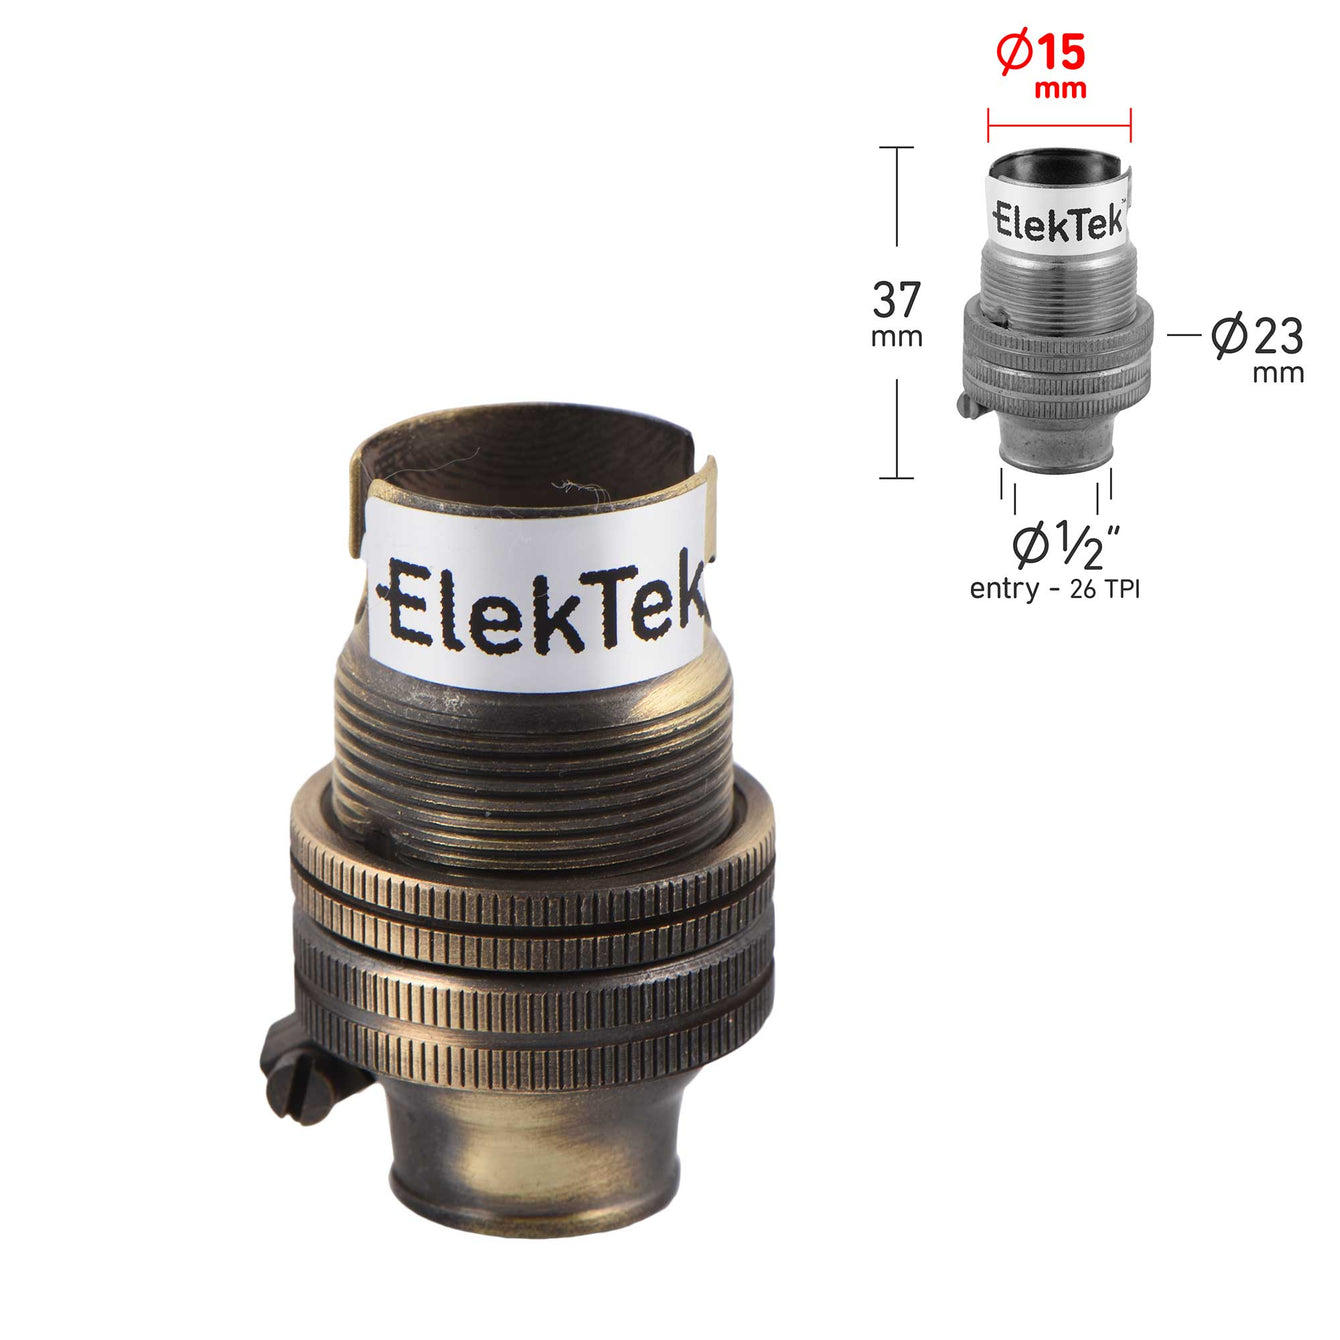 ElekTek Lamp Holder 10mm or Half Inch Entry Small Bayonet Cap SBC B15 With Shade Ring Solid Brass - Buy It Better Chrome / Half Inch